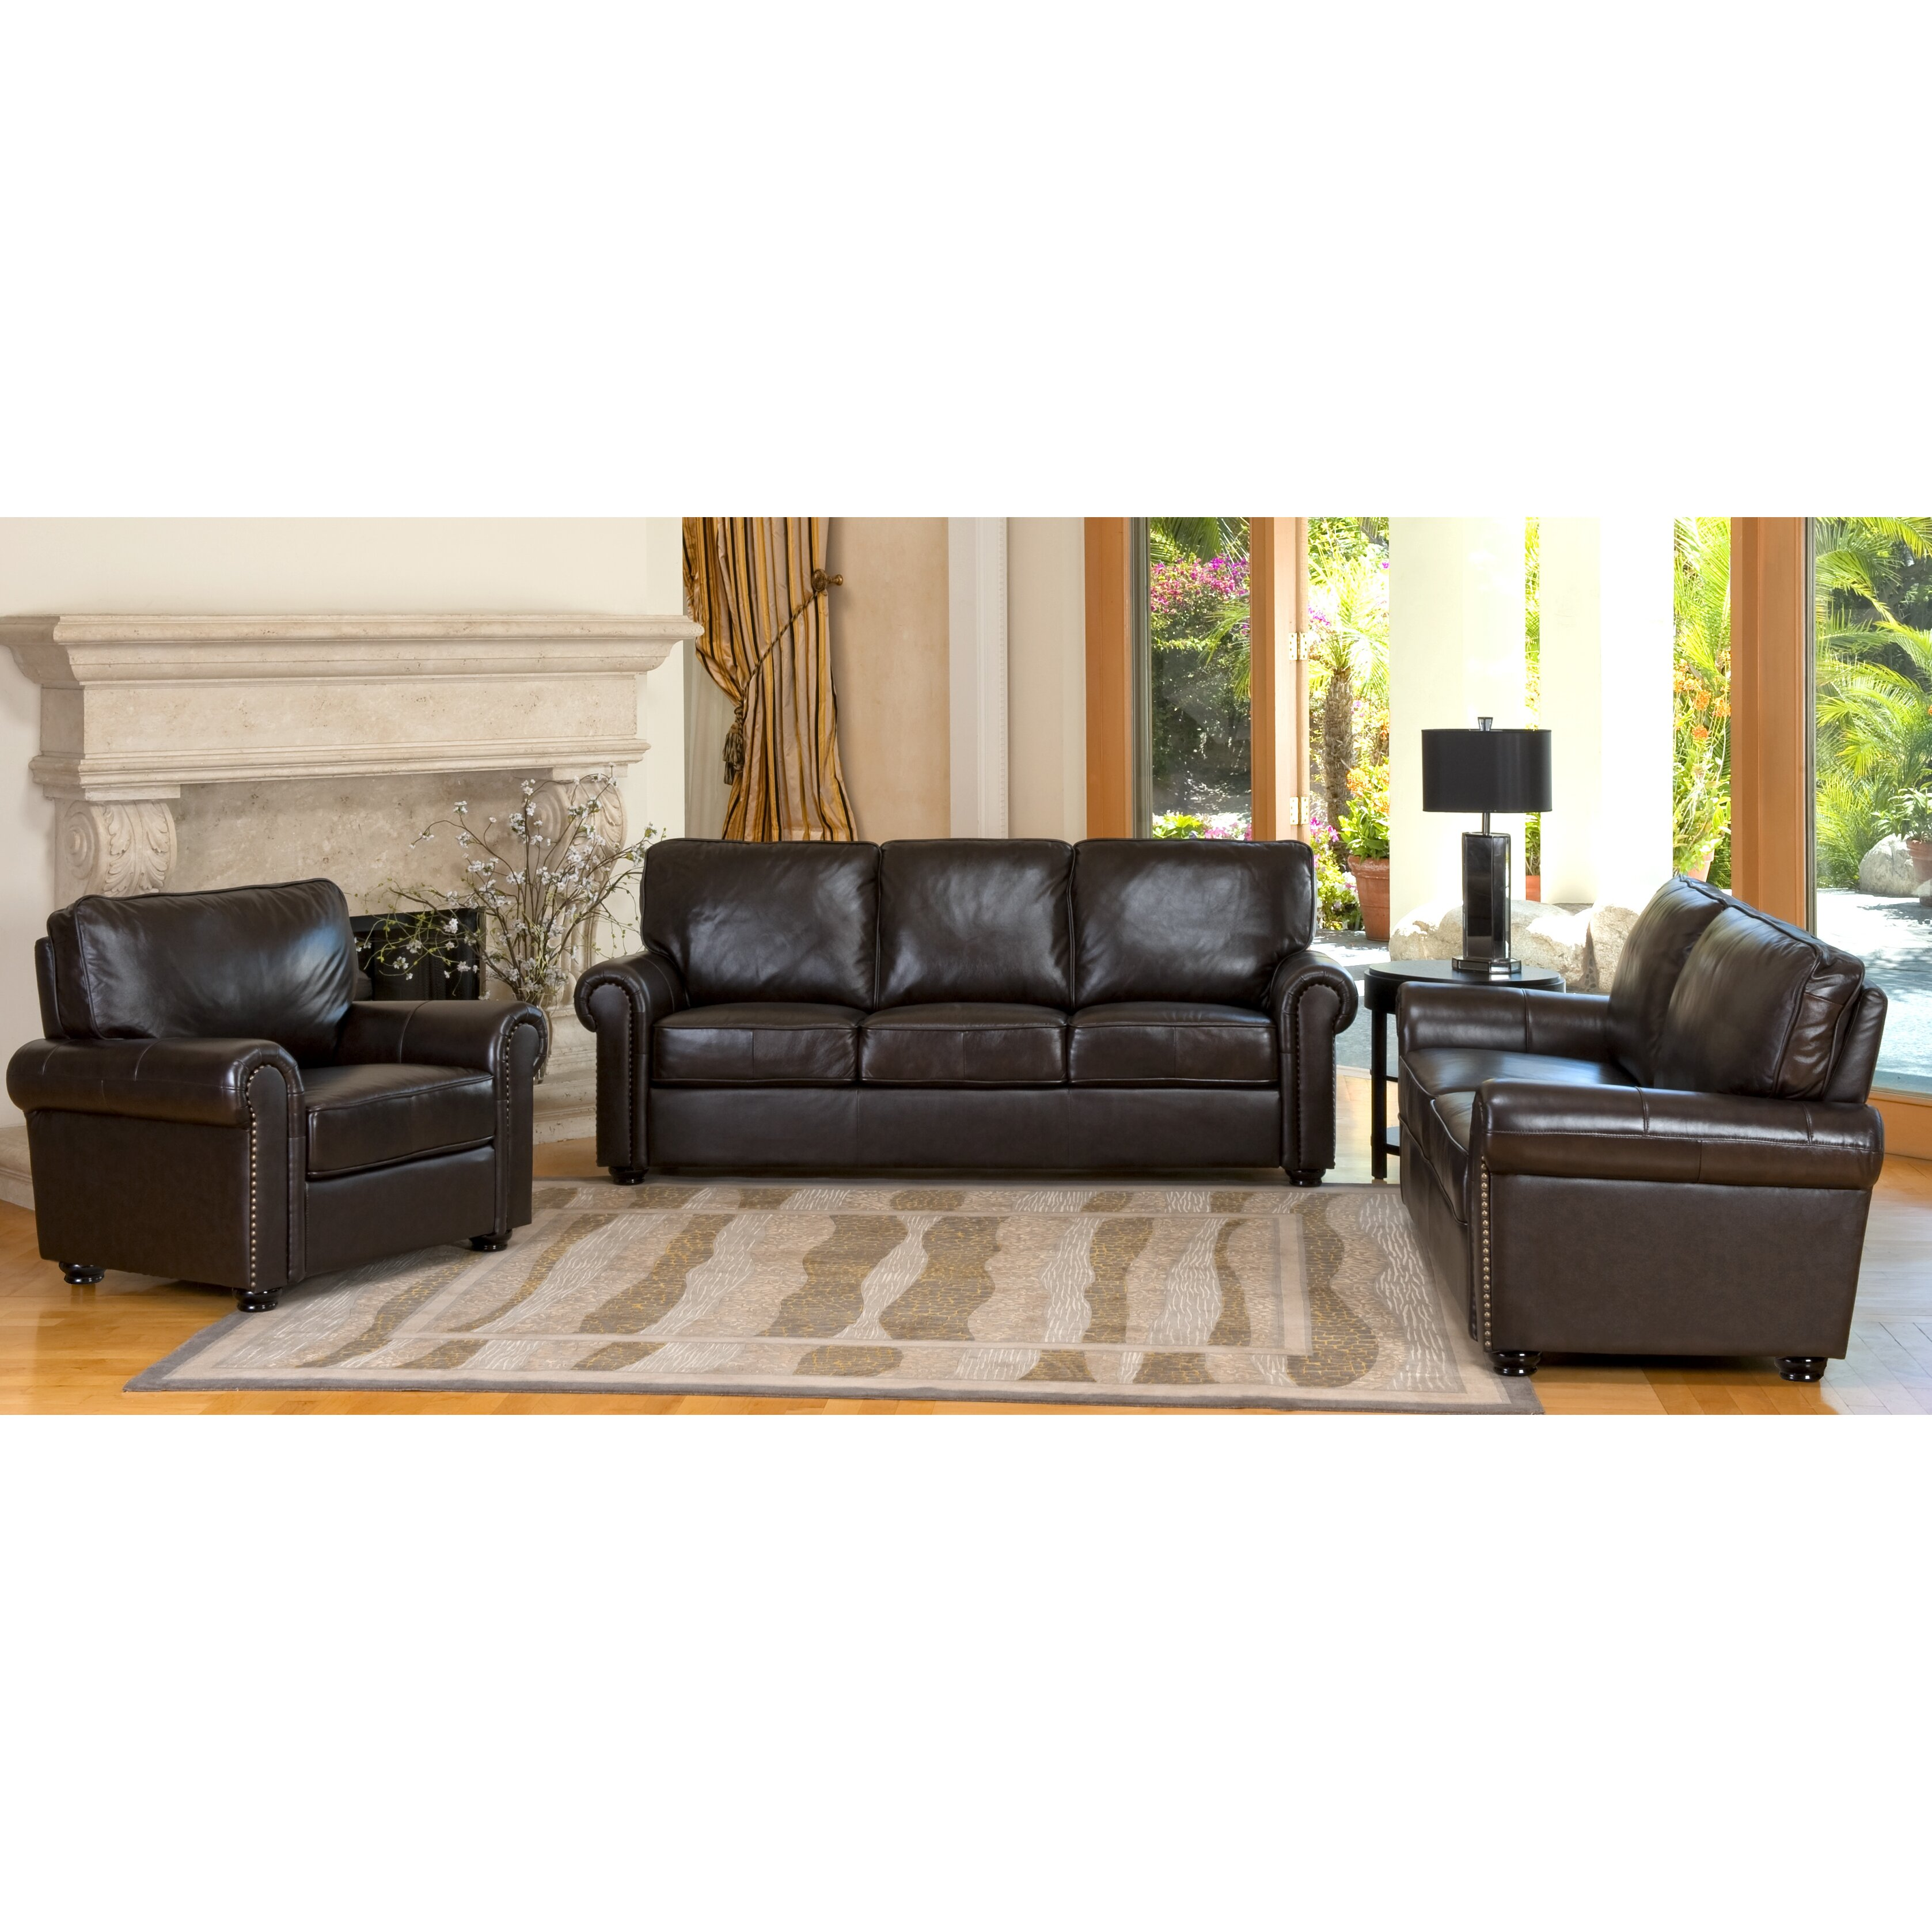 Darby Home Co Coggins Leather Sofa Reviews Wayfair